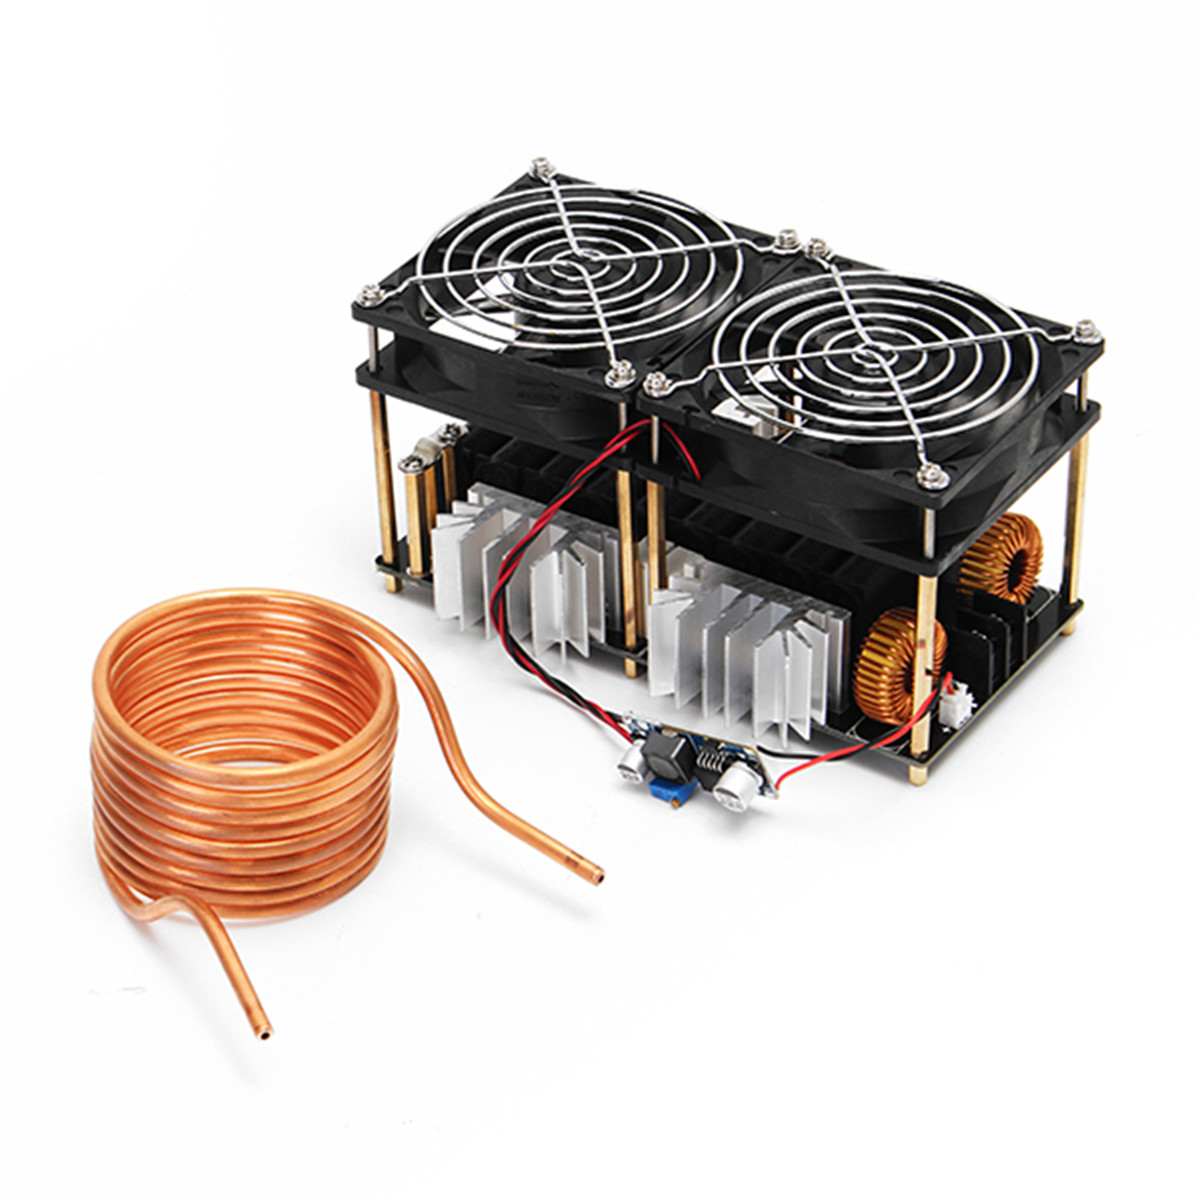 NEW 1800W 12V 48V 40A High Frequency Induction Heating Module Without Tap